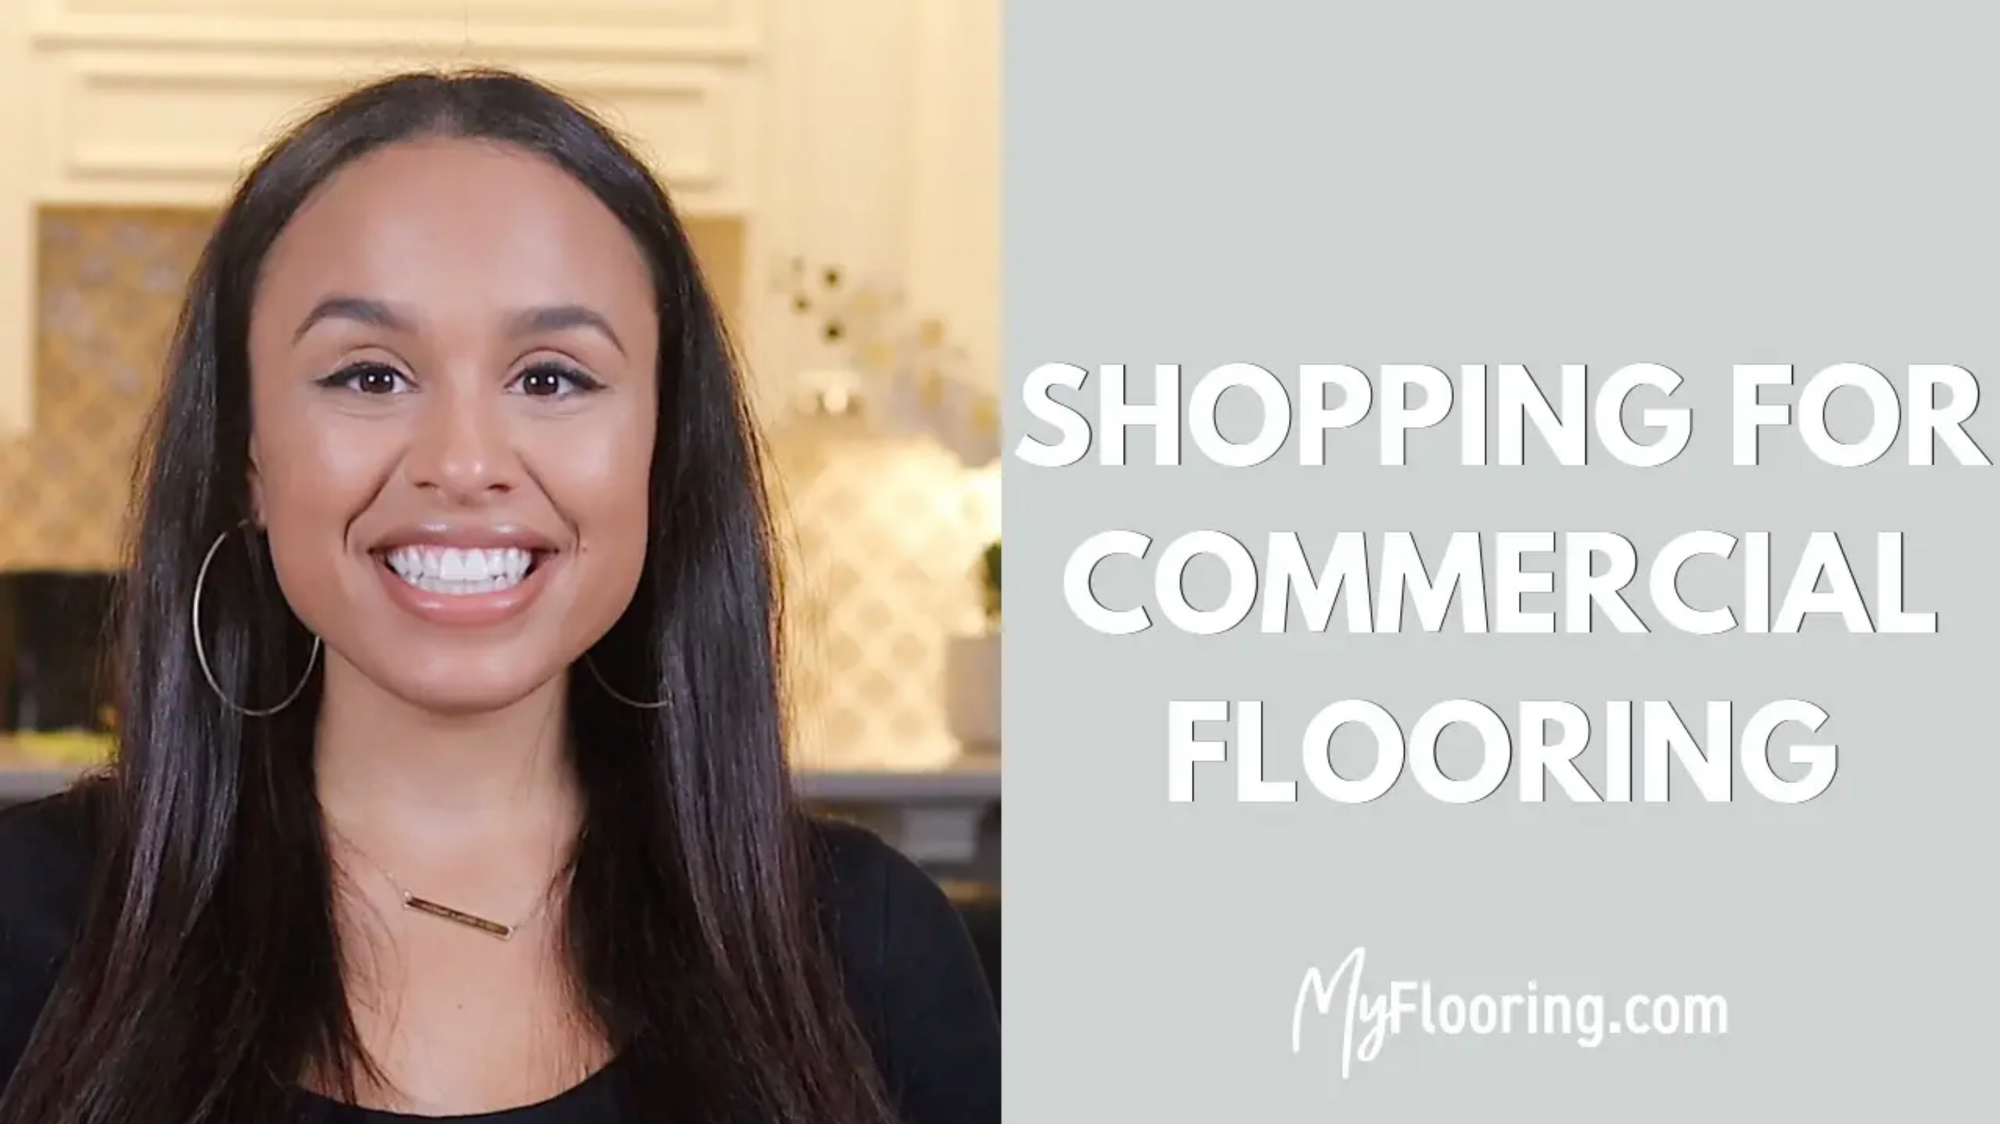 Things to Consider When Shopping for Commercial Flooring